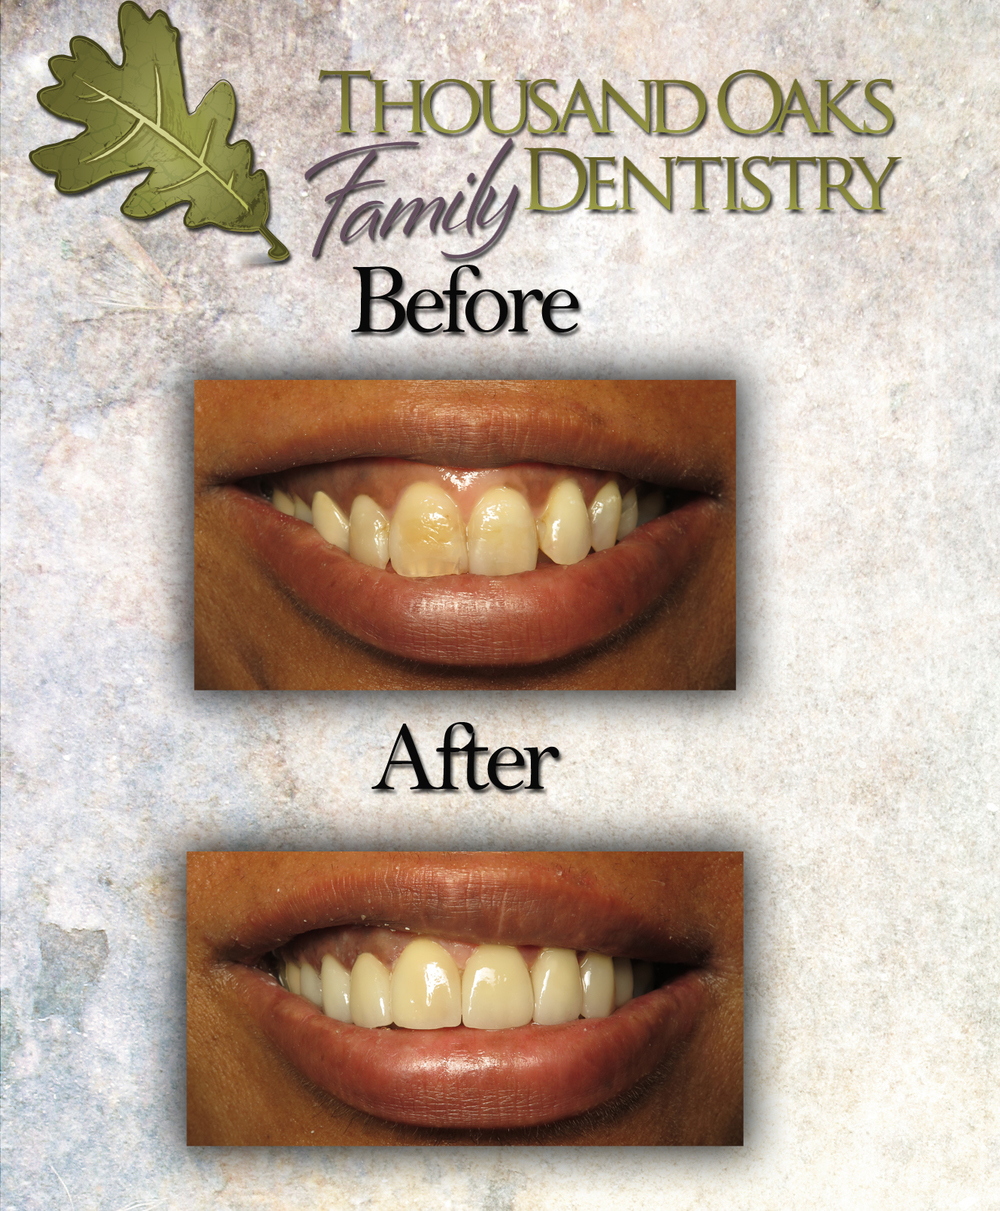 Thousandoakafamilydentistry.com